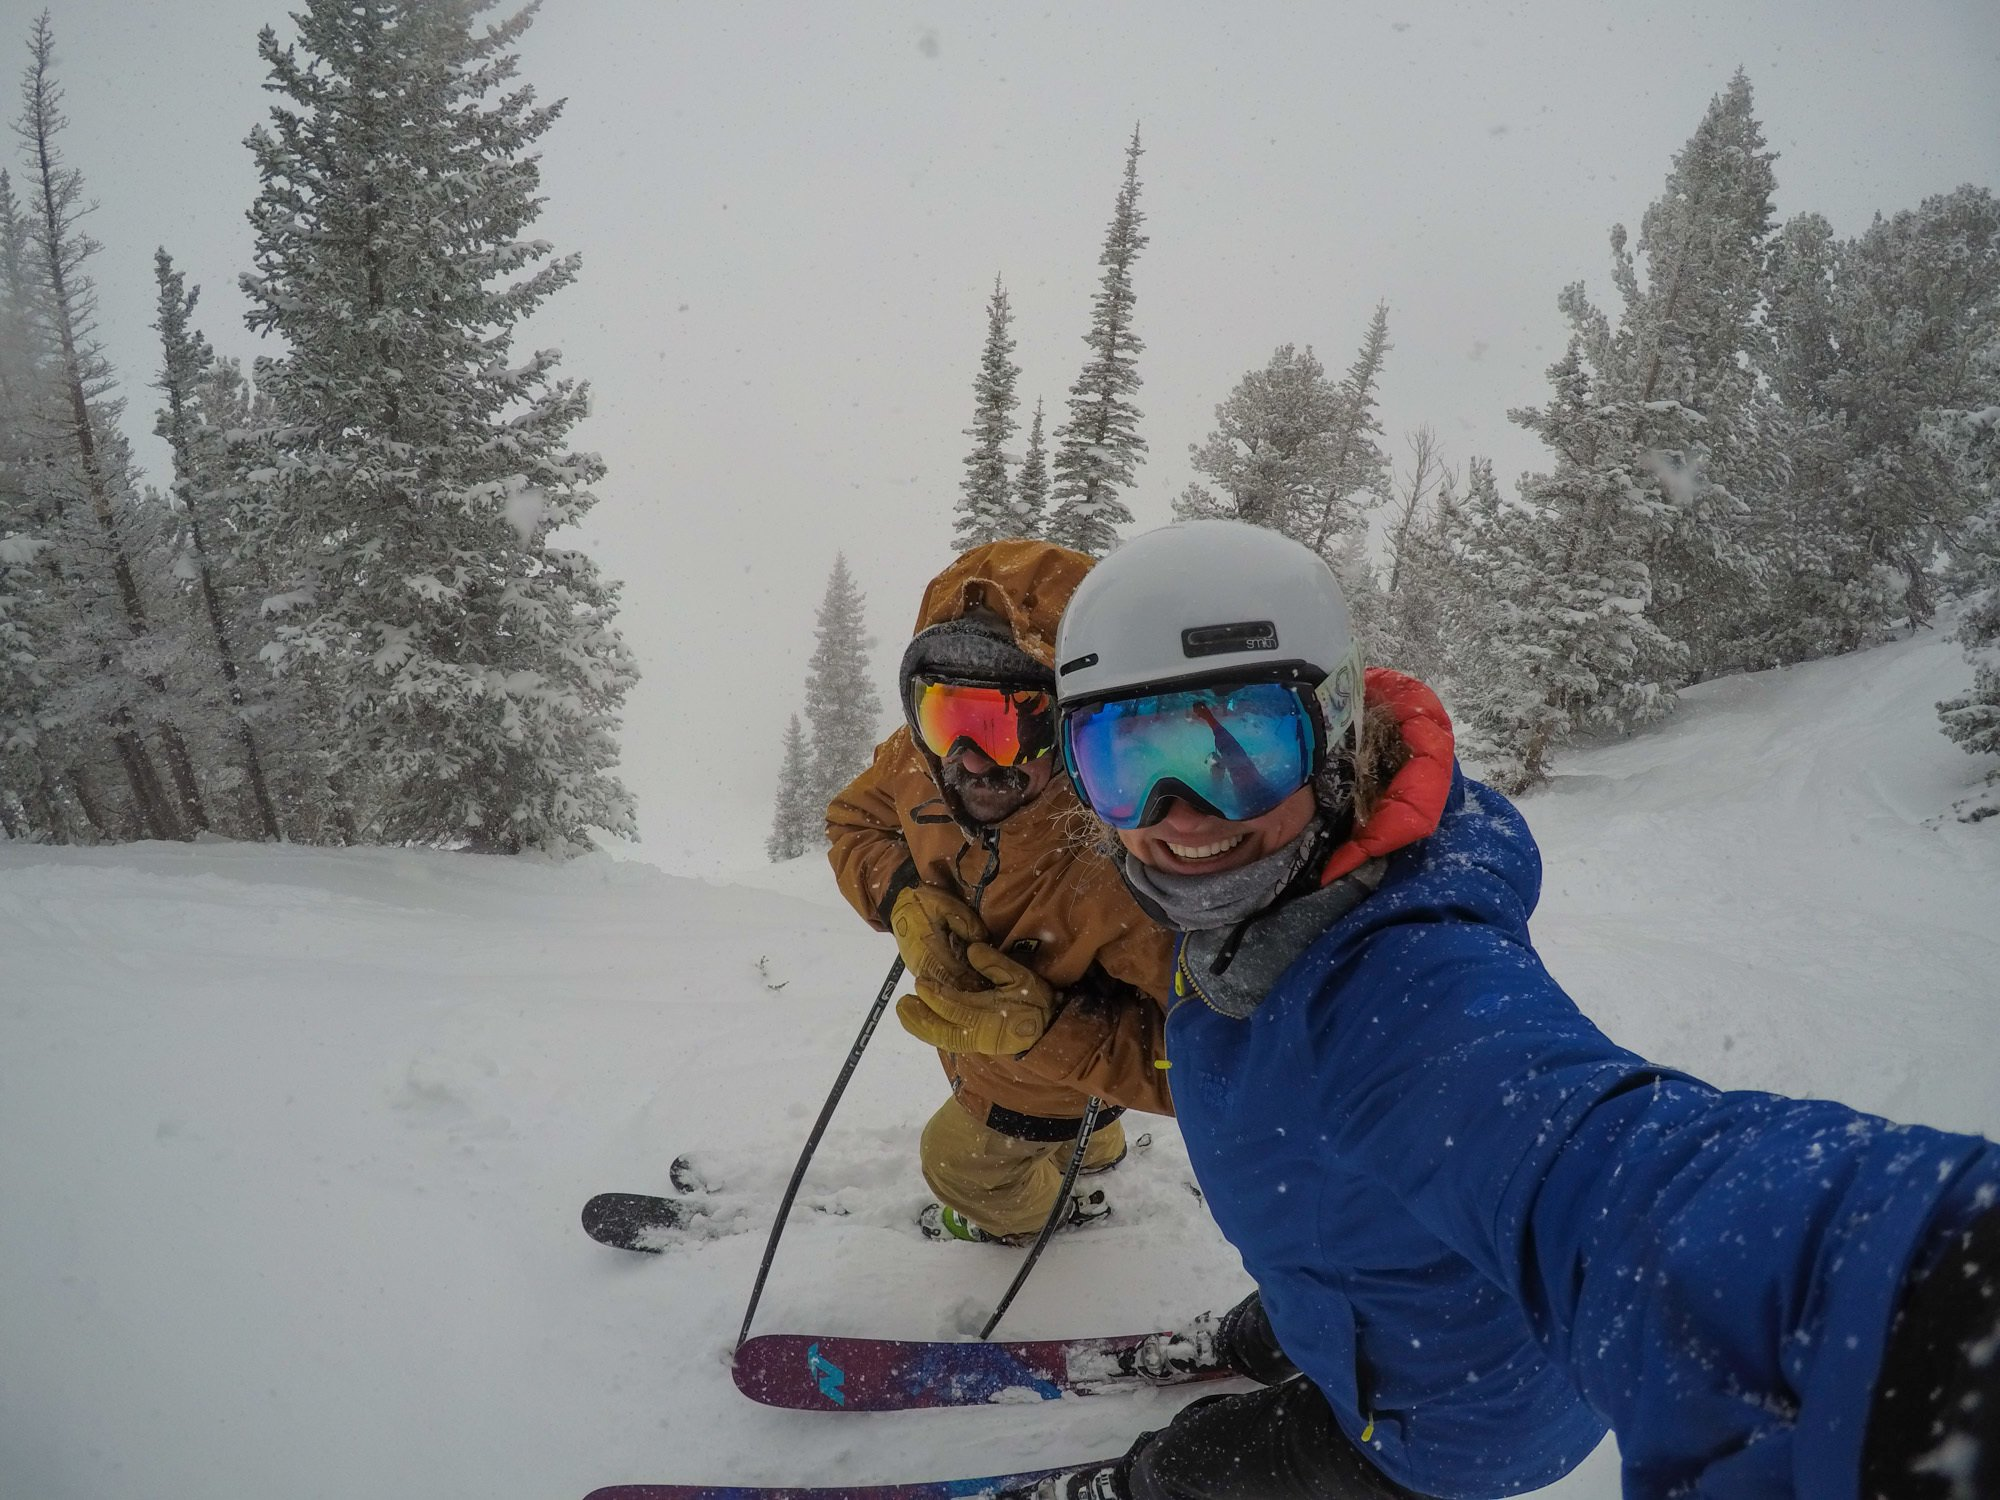 Work at a ski resort // Want to ditch the 9-5 for more time outside? Here are 10 outdoor career paths that will get you out of the cube, providing healthy work-life balance and plenty of fresh air.